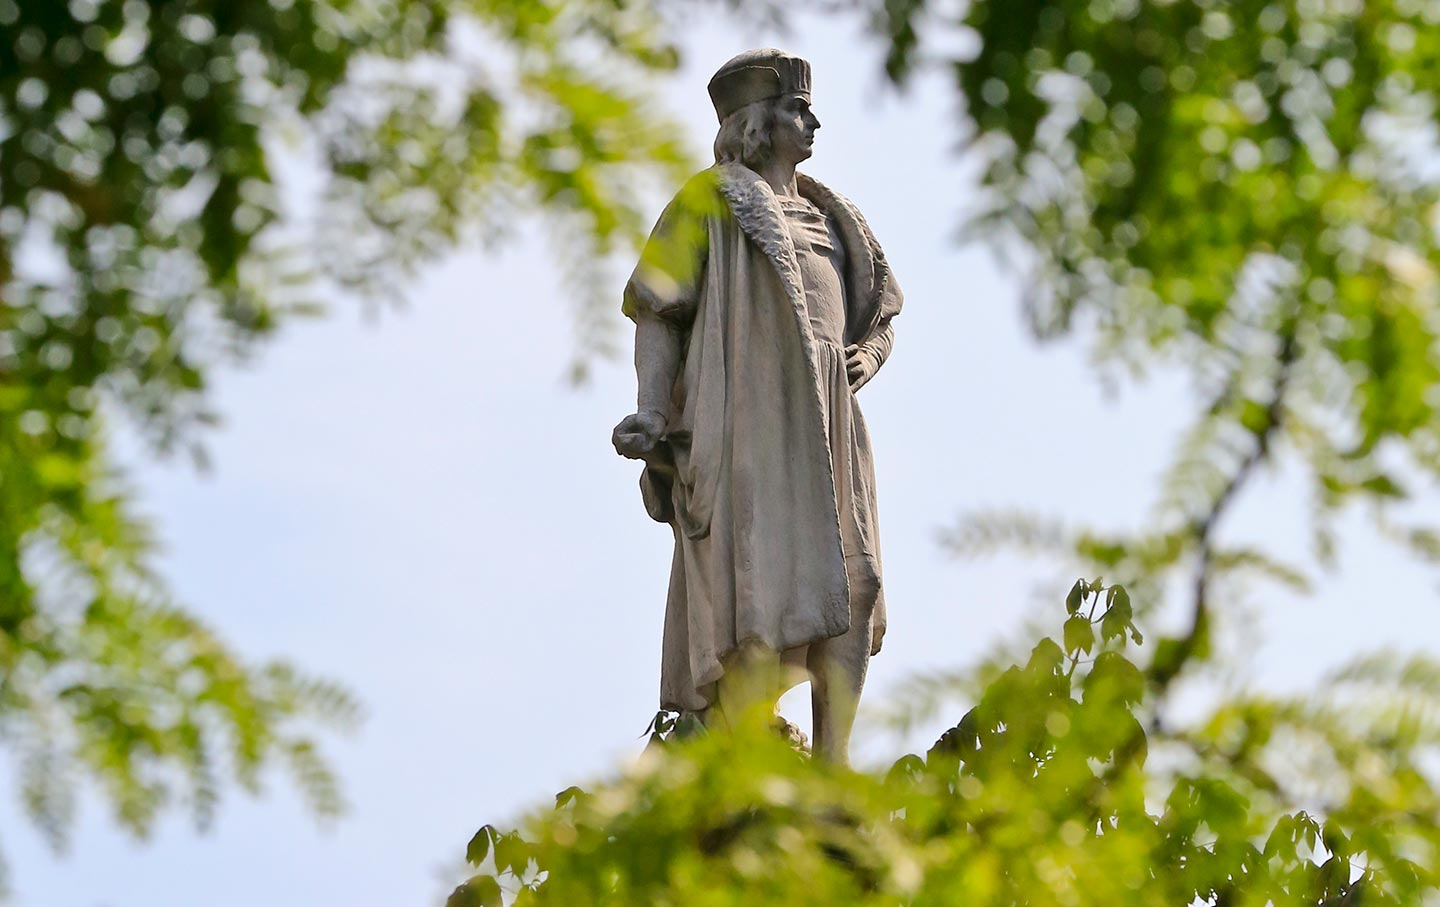 christopher columbus american hero or is I, too, agree that christopher columbus should not be identified as either a hero or a villain given that some schools still teach that he discovered america may make him look like a villain .